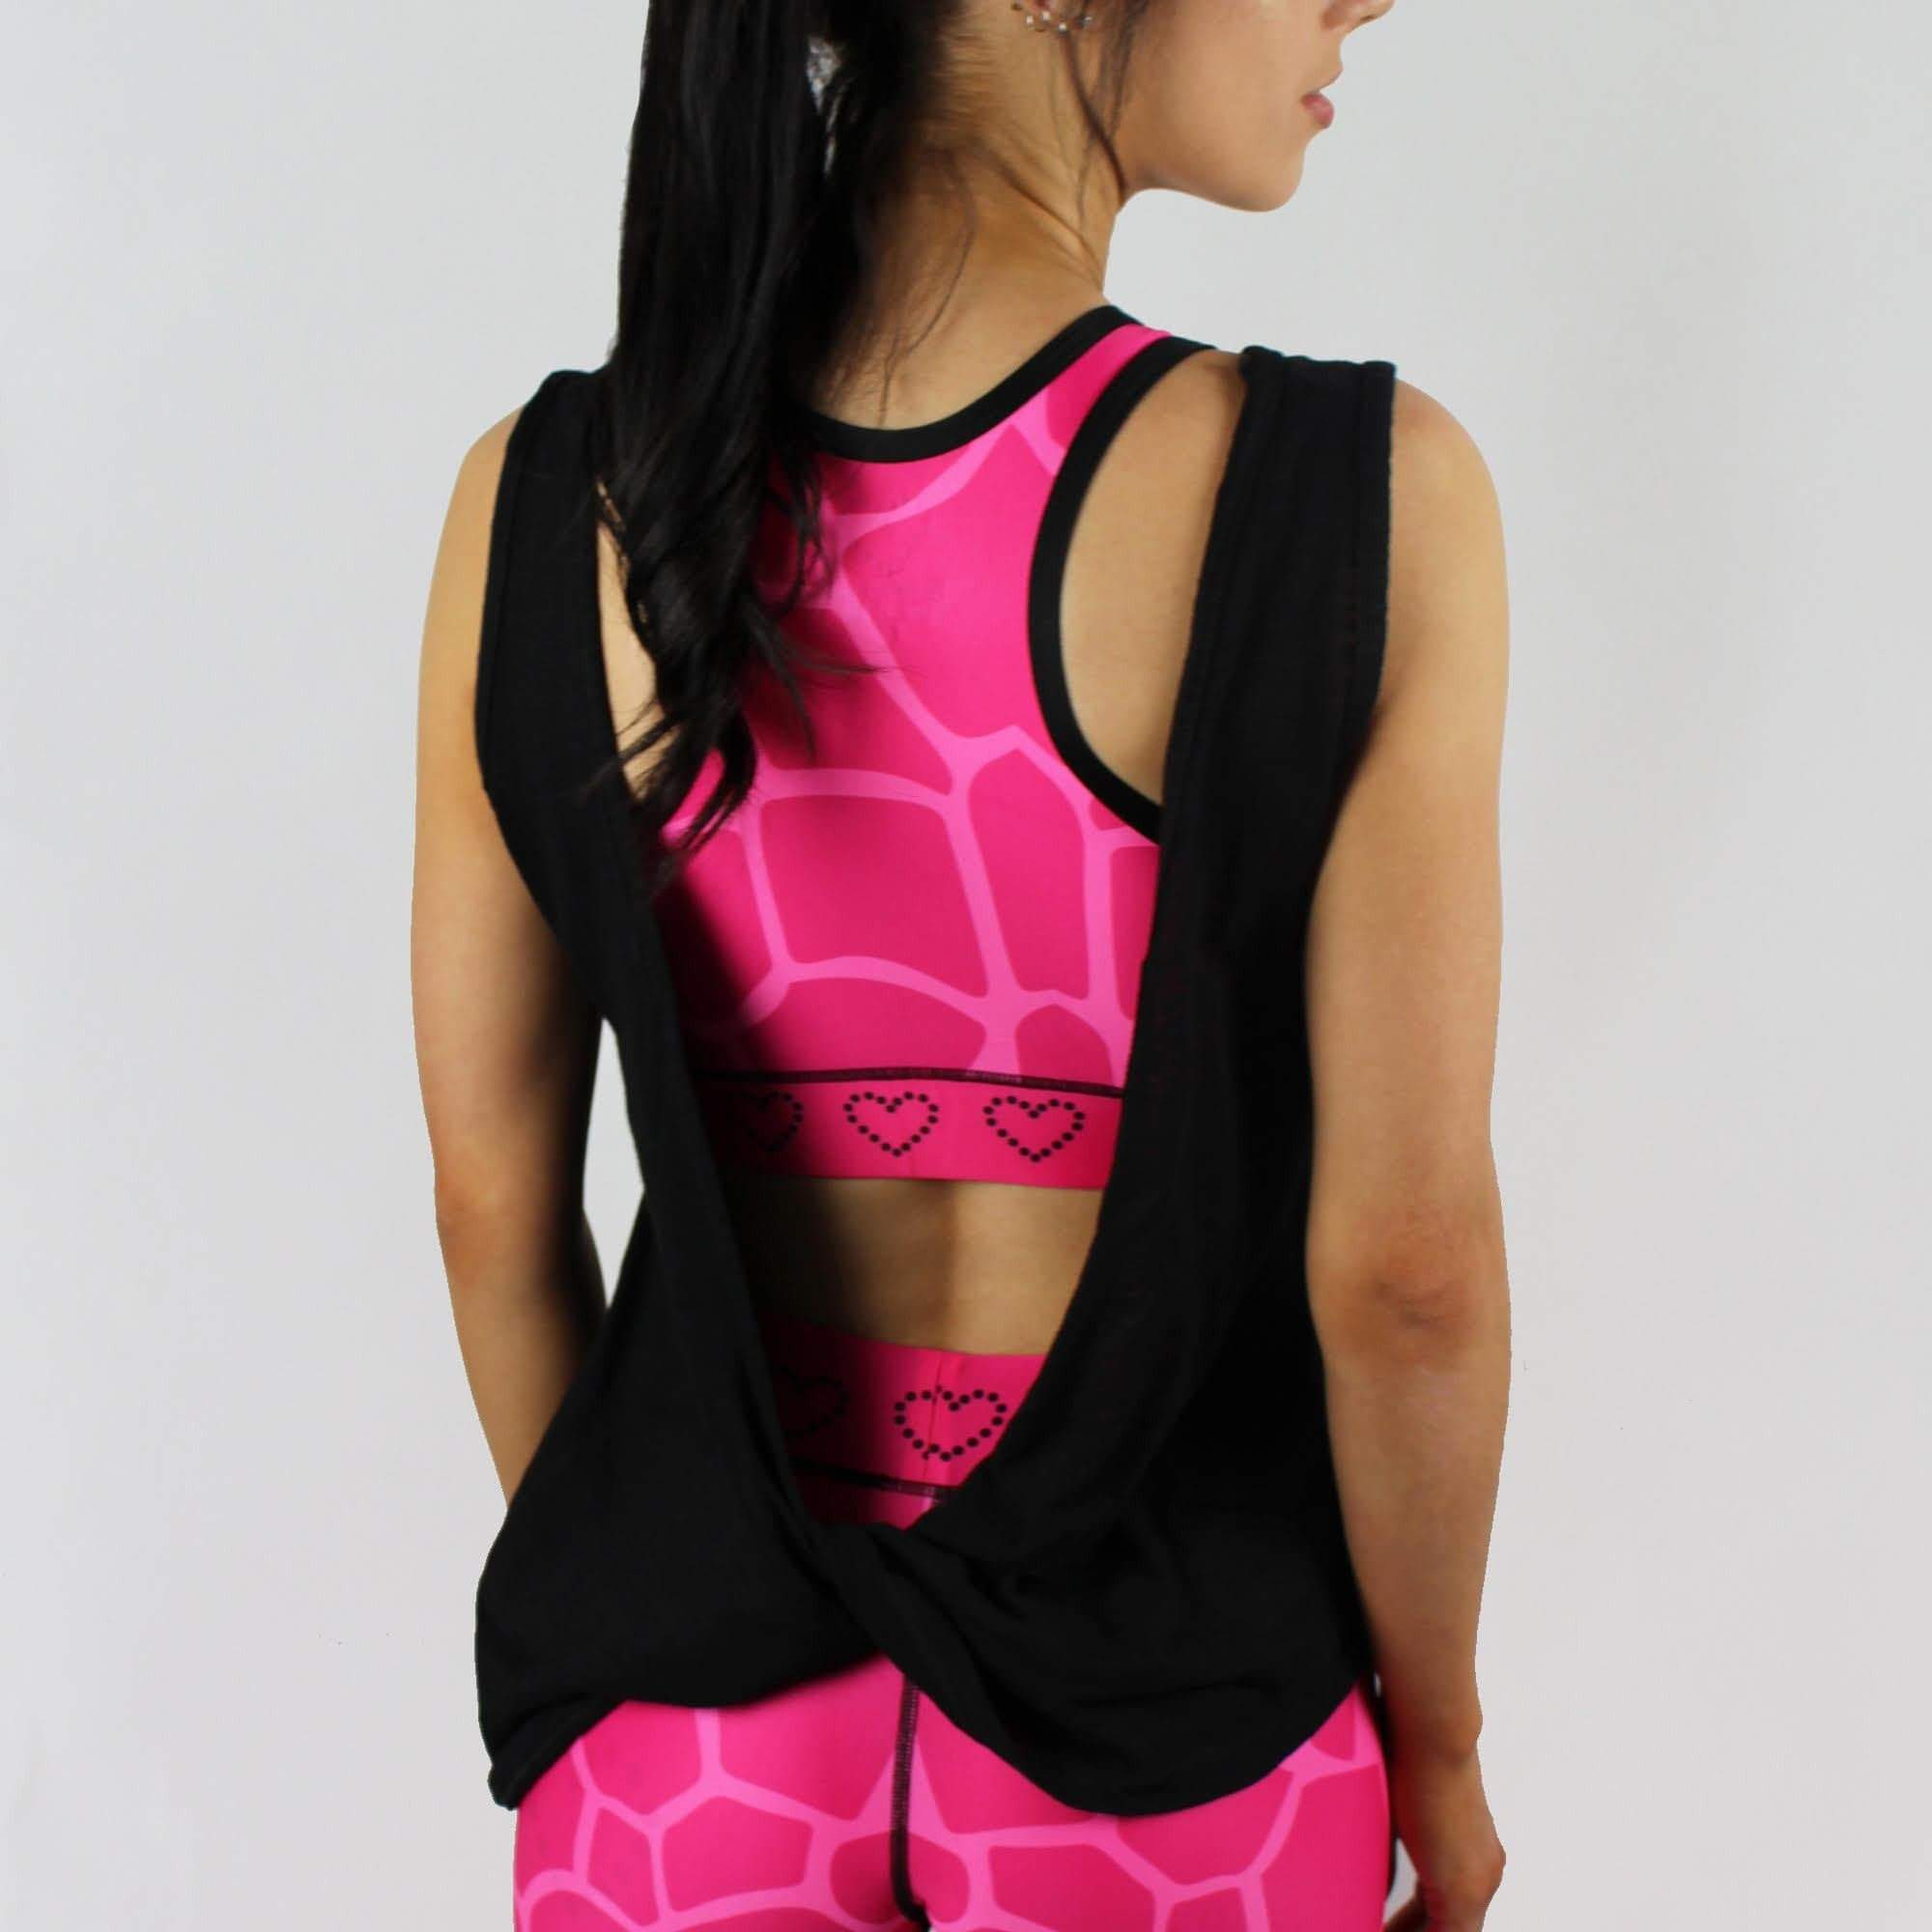 The Pankhurst - Women's Gym Vest Top Twisted Back - Black - havetolove-com